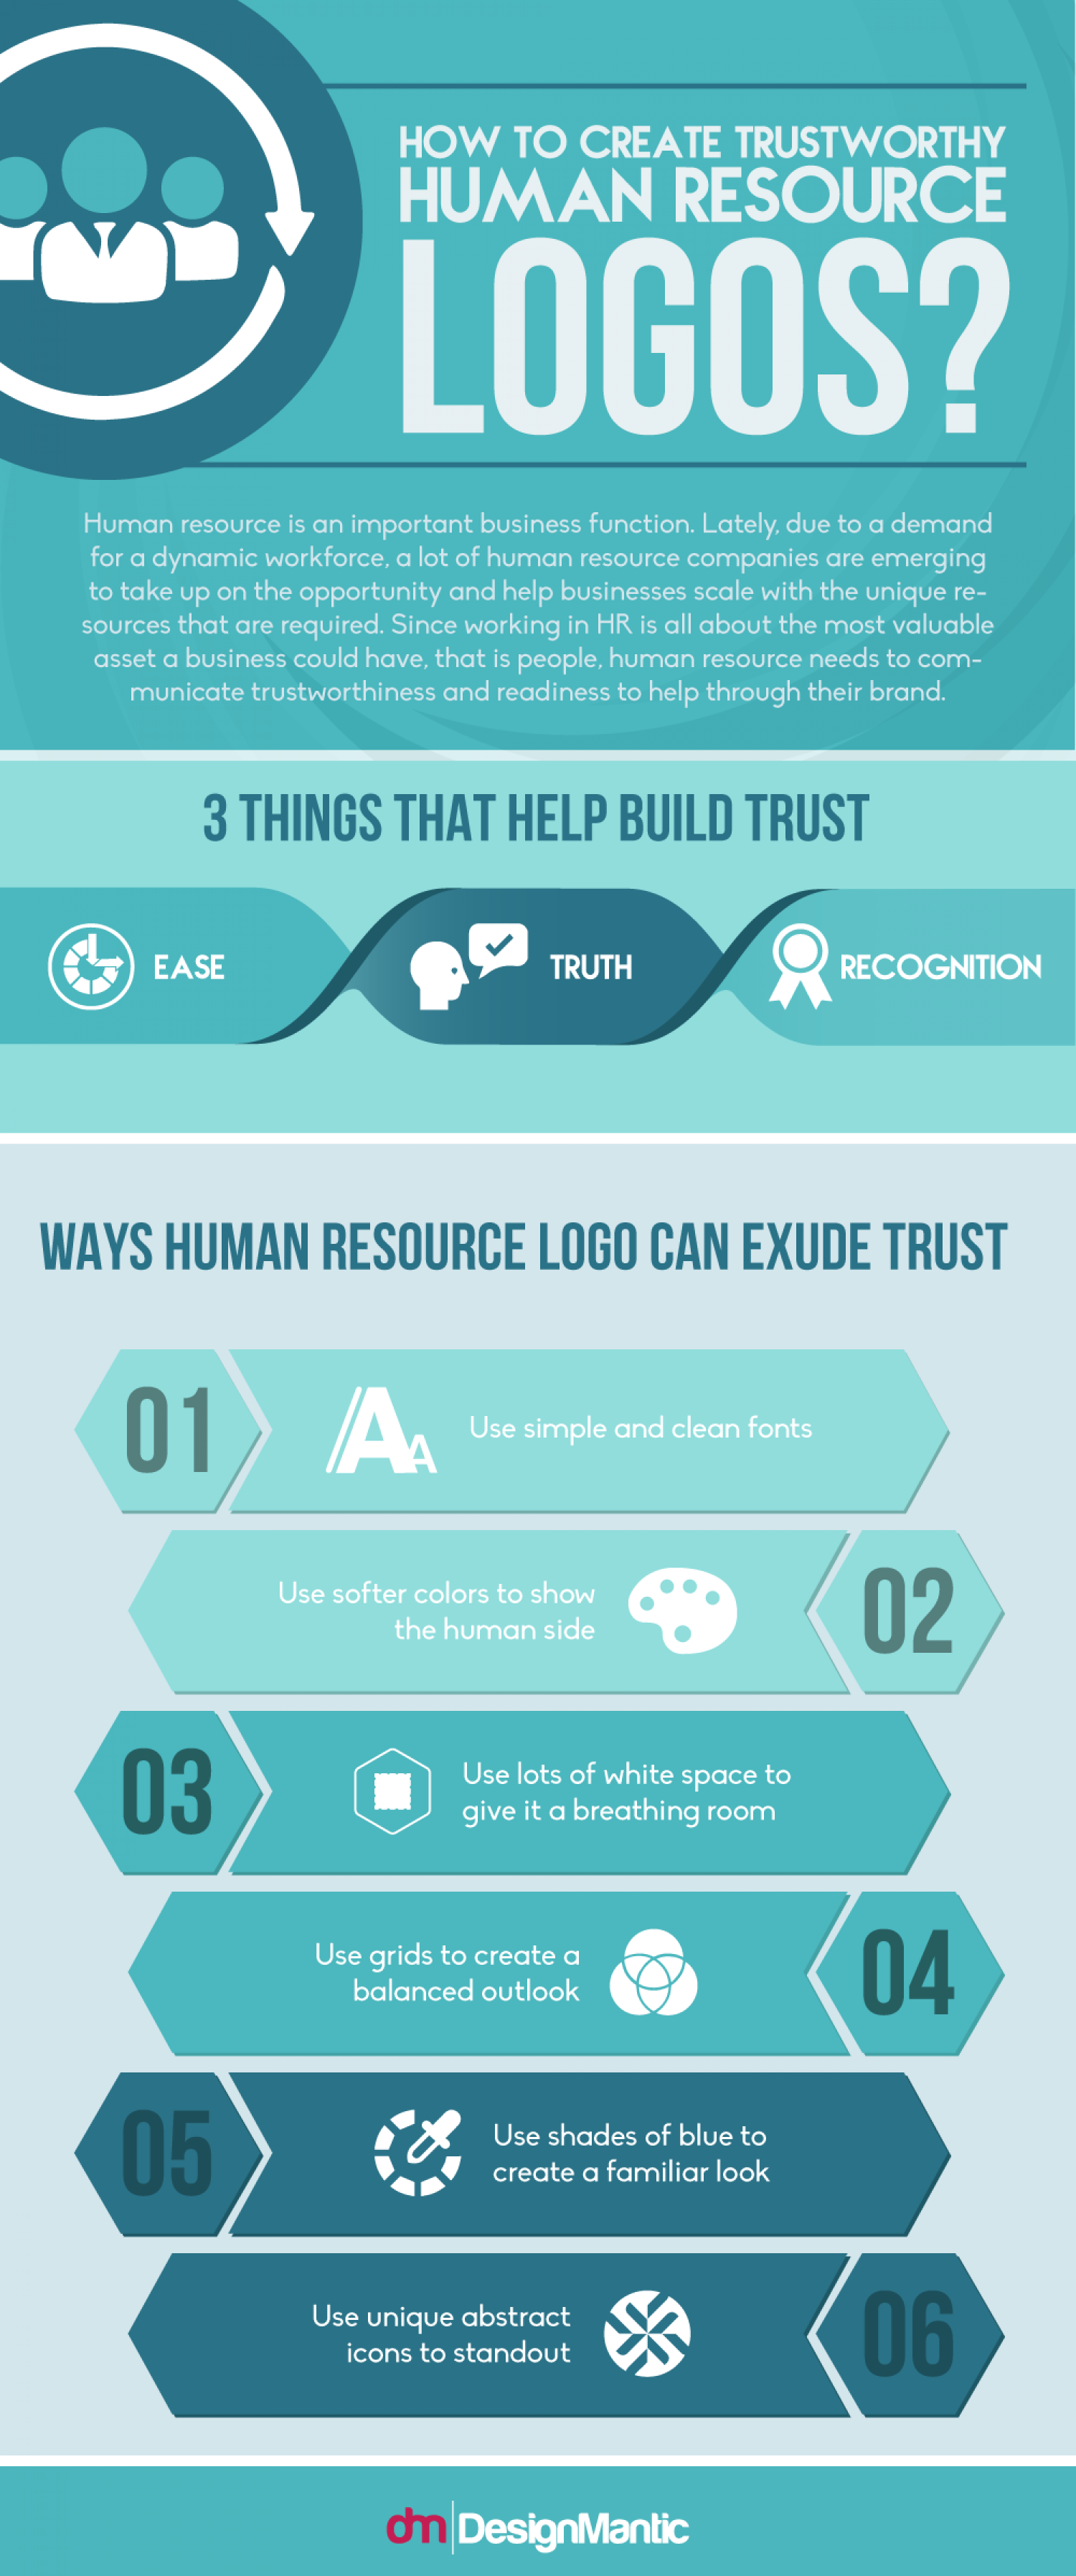 How To Create Trustworthy Human Resource Logos? Infographic